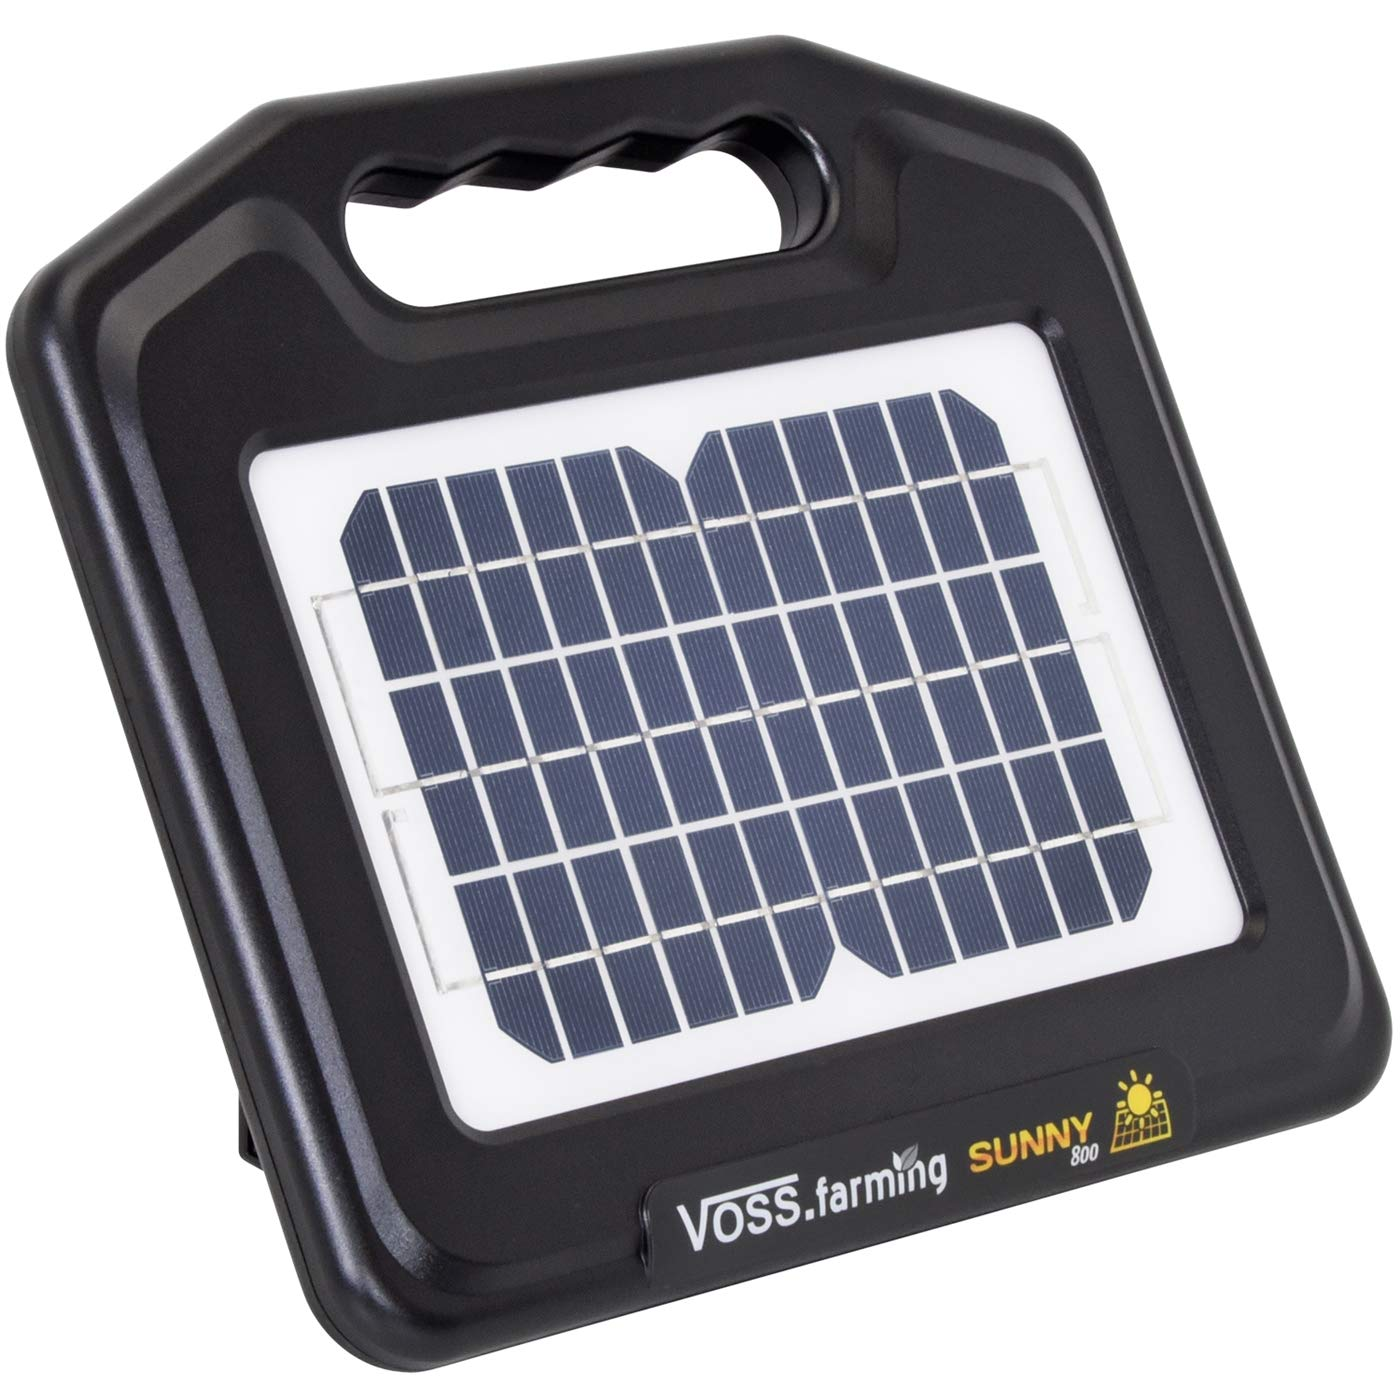 VOSS.farming  Sunny 800  Electric Fence Solar Energiser   0.65 J, 9500 V   incl. Li-Ion Rechargeable Battery + Mains Adapter